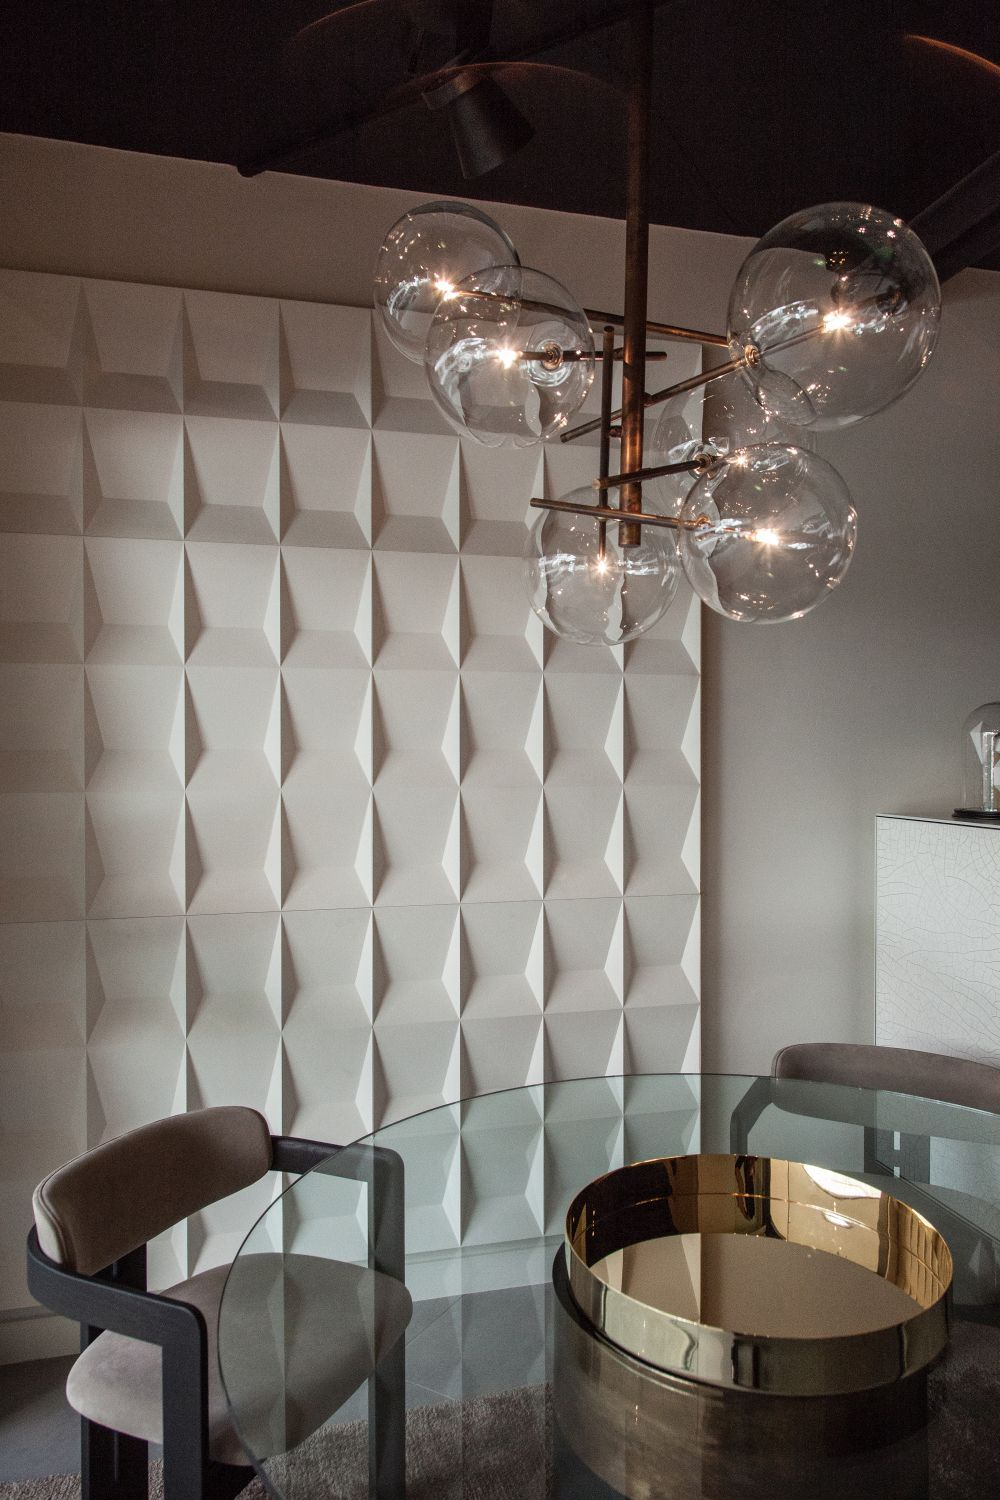 Cool Wall Design Ideas That Can Turn Spaces From Bland To Original